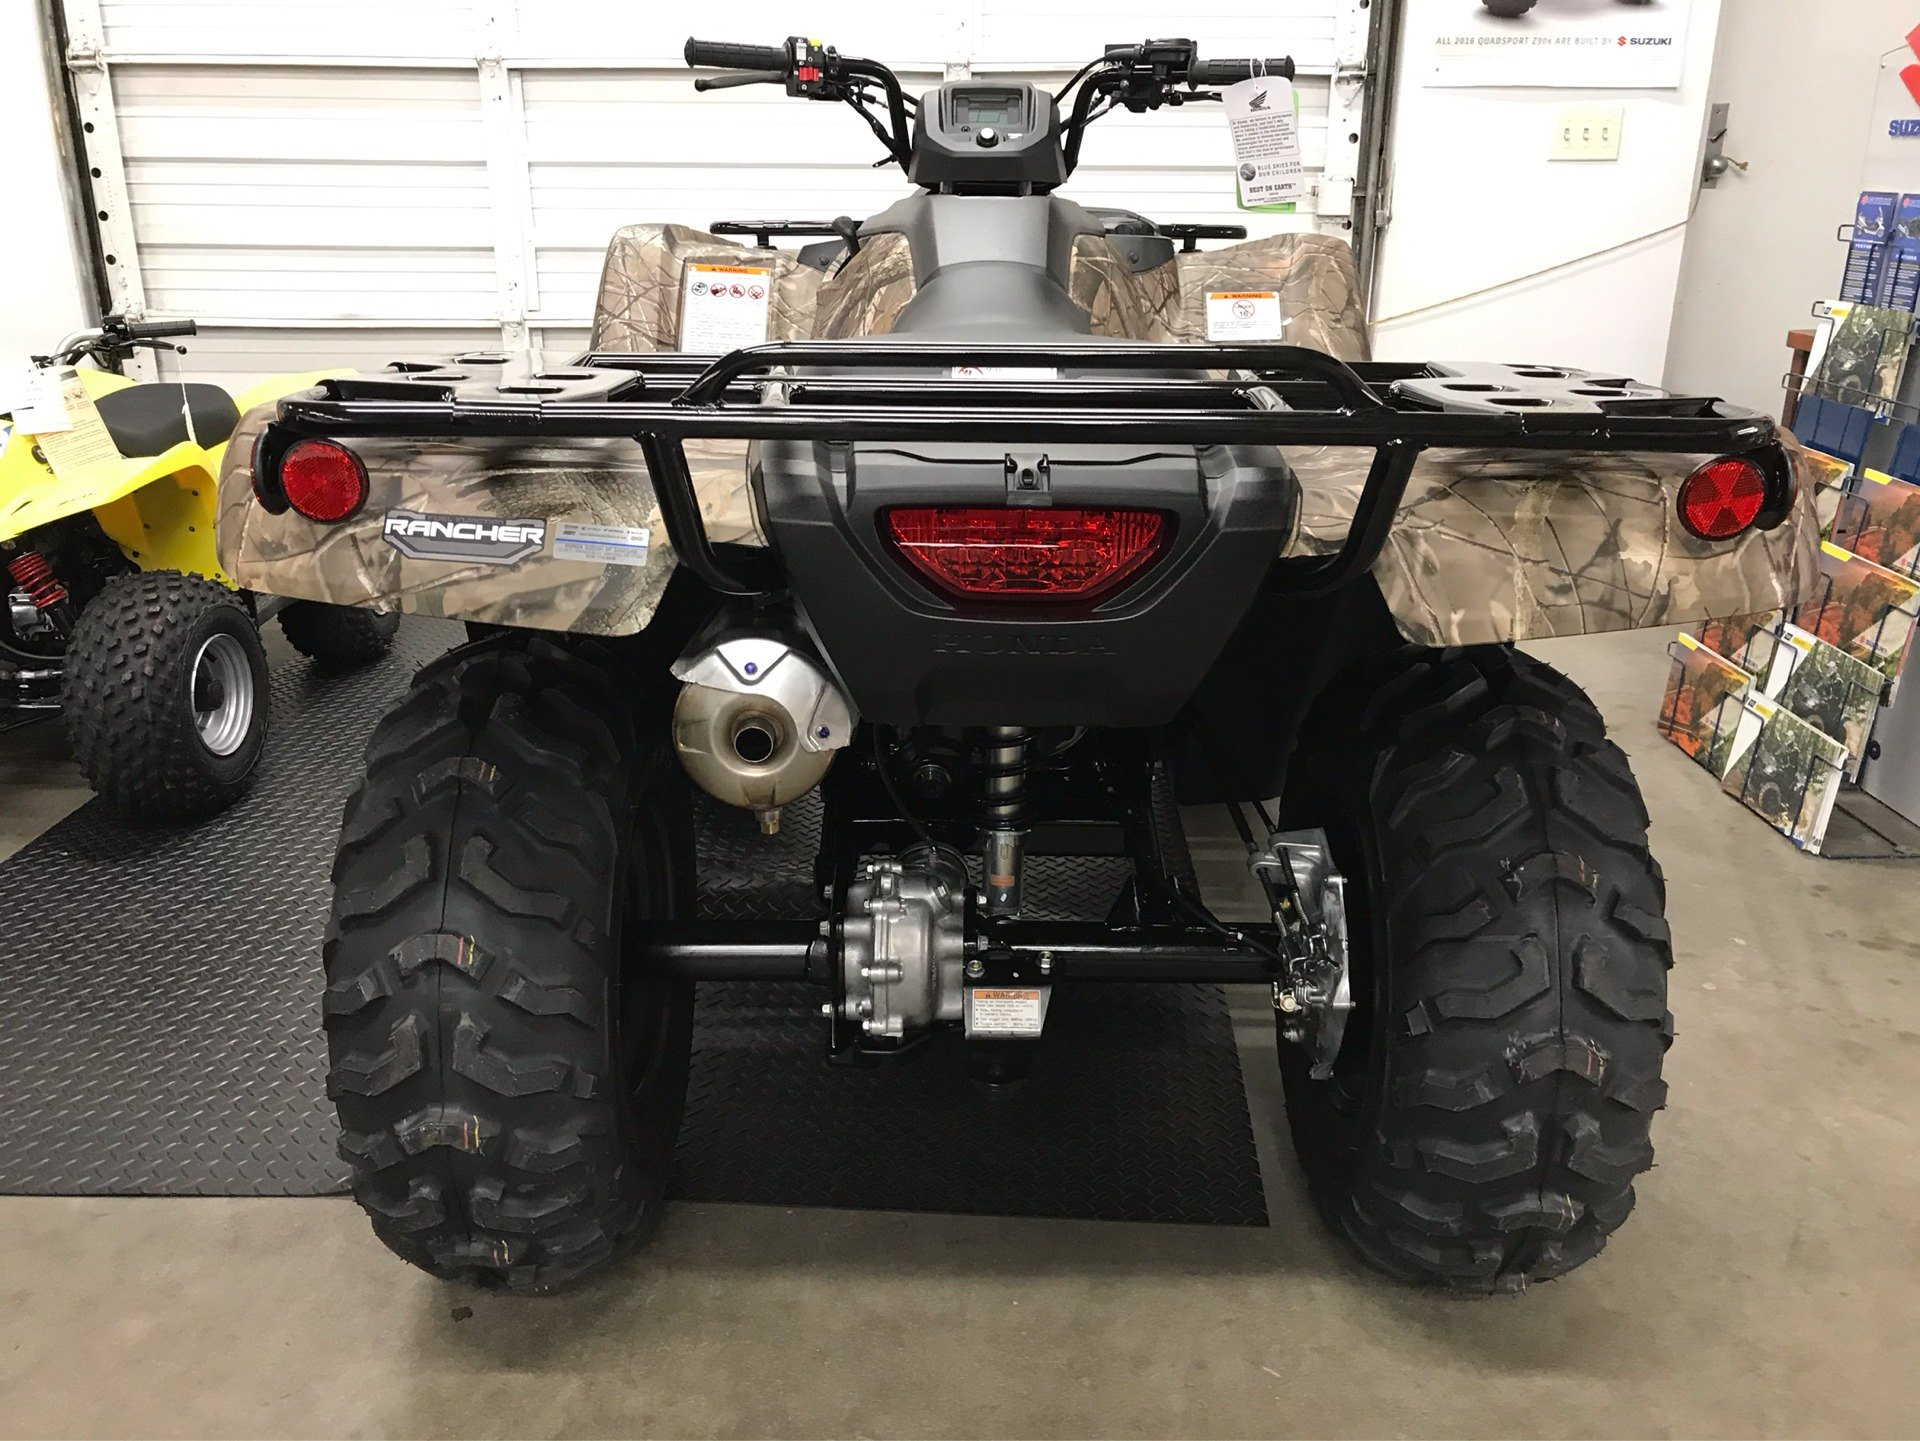 2020 Honda FourTrax Rancher 4x4 in Sanford, North Carolina - Photo 9